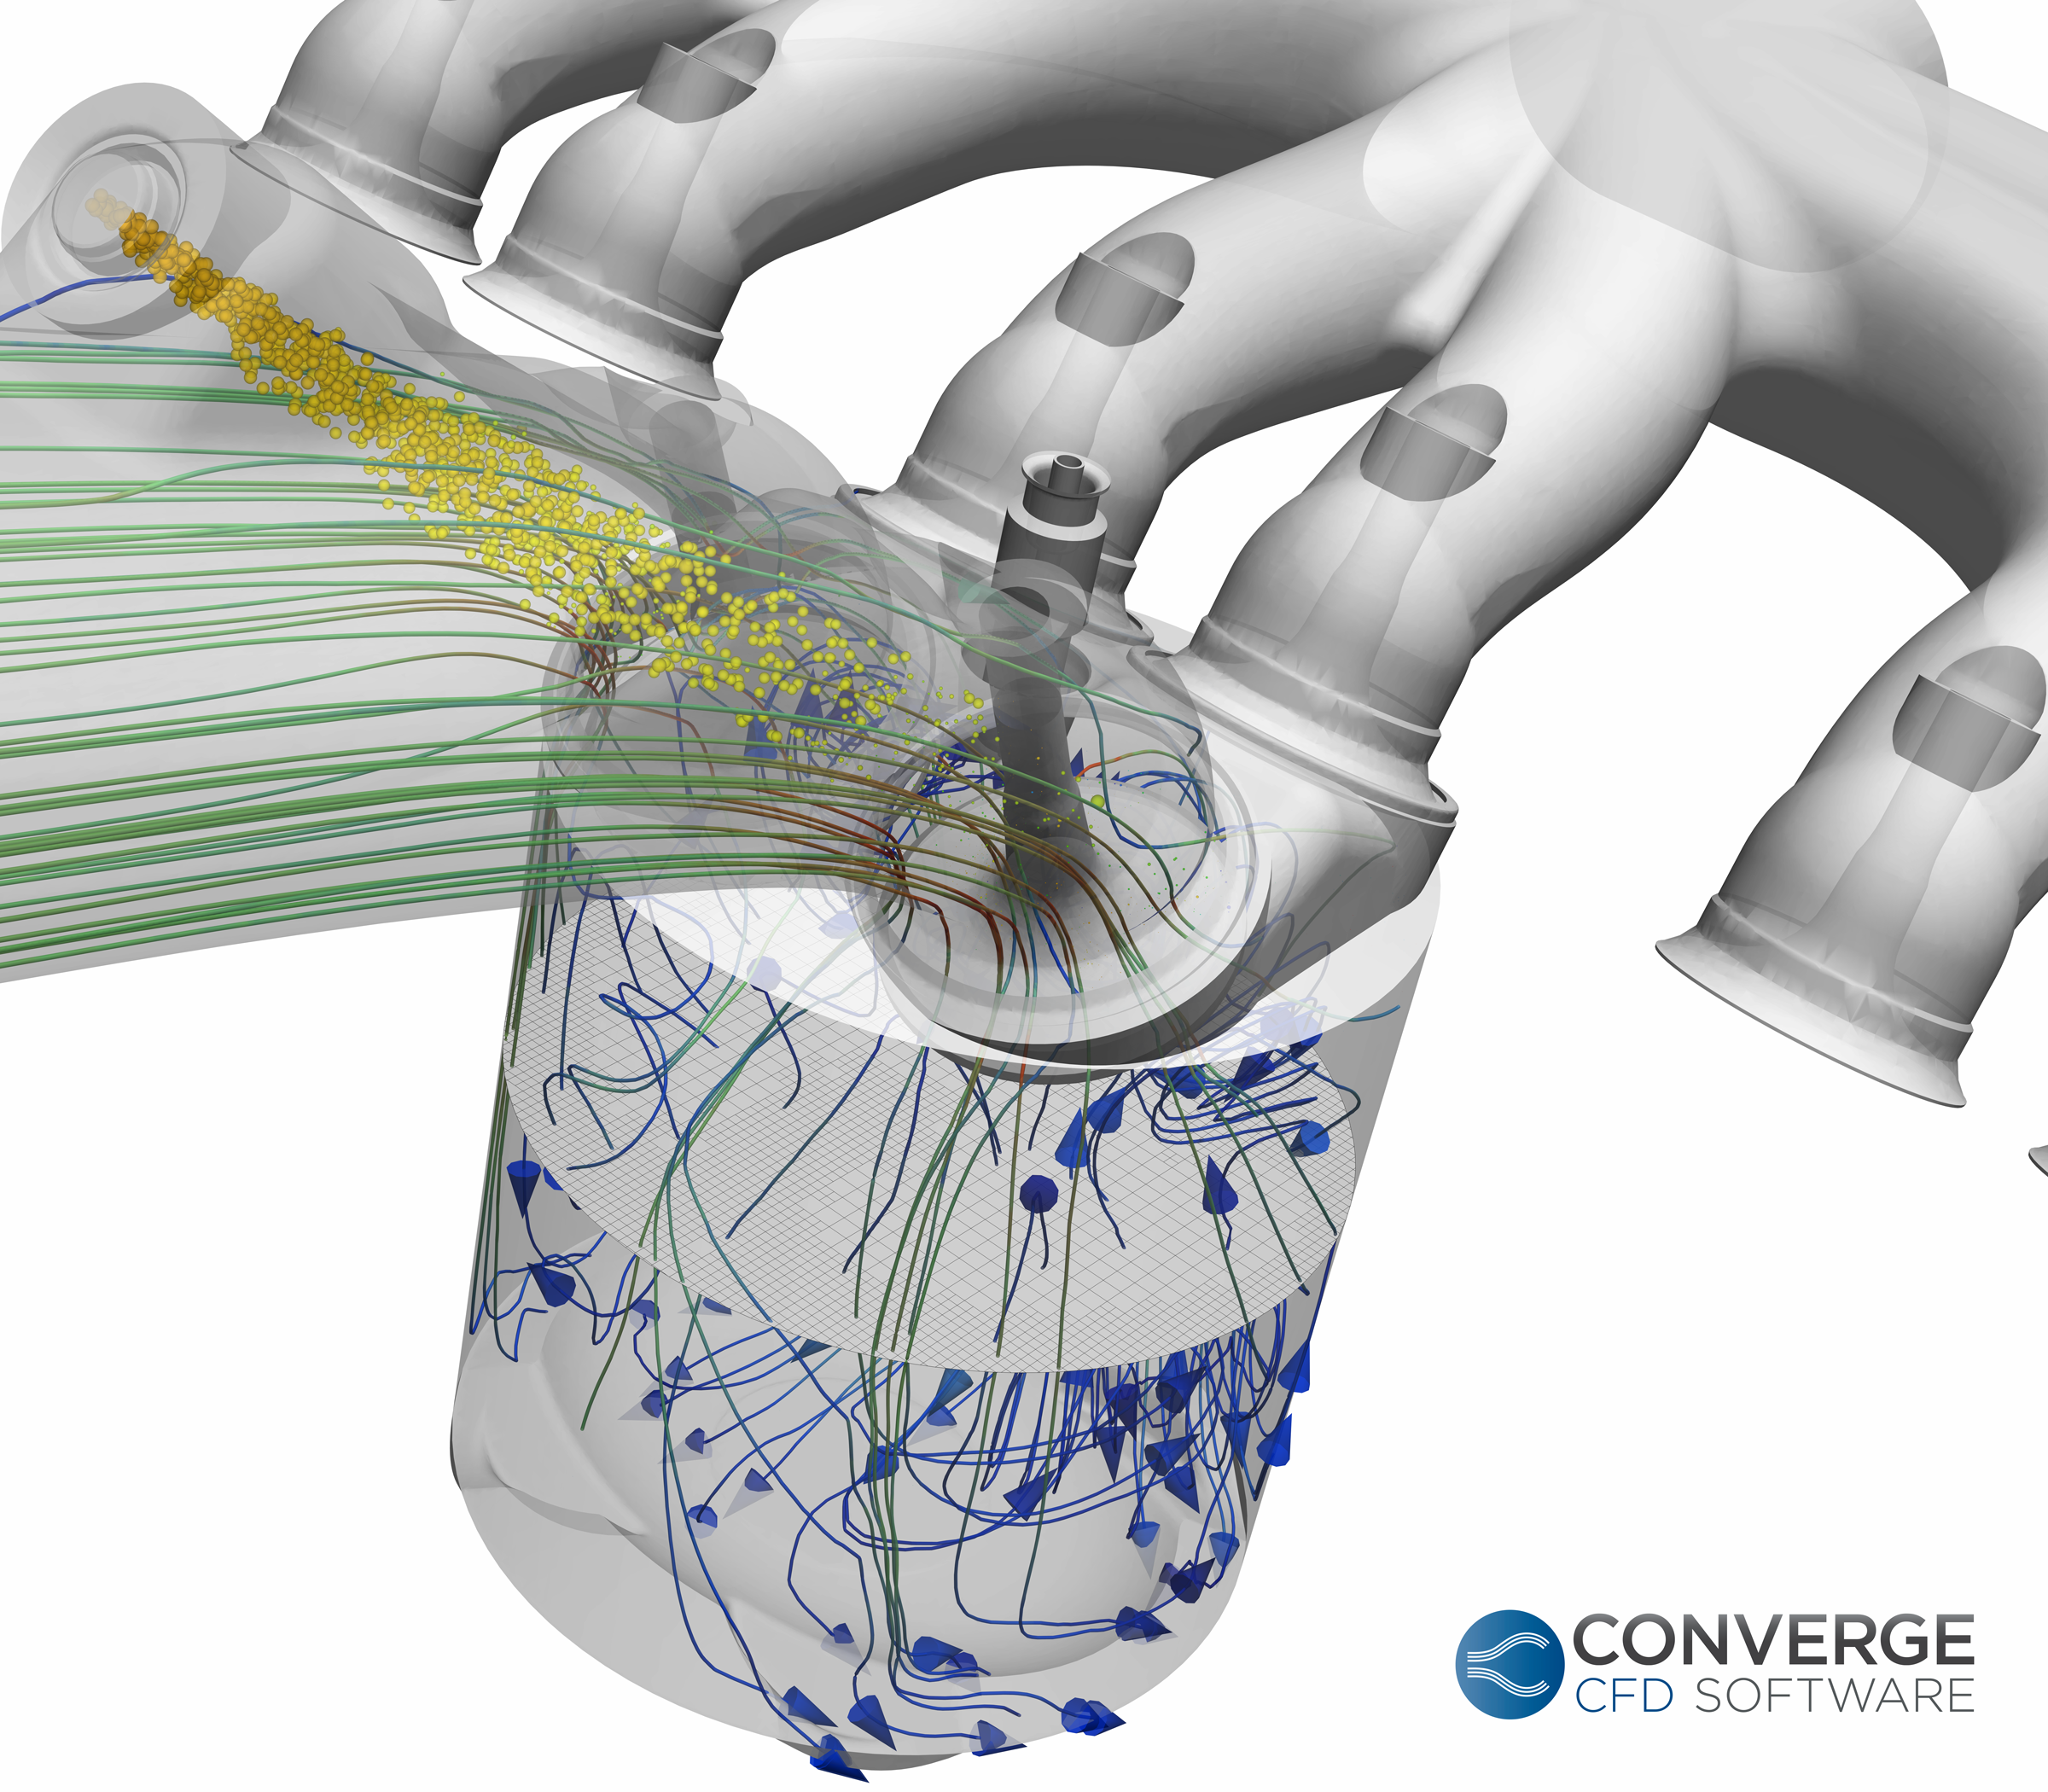 CONVERGE Workflow Tips - CONVERGE CFD Software